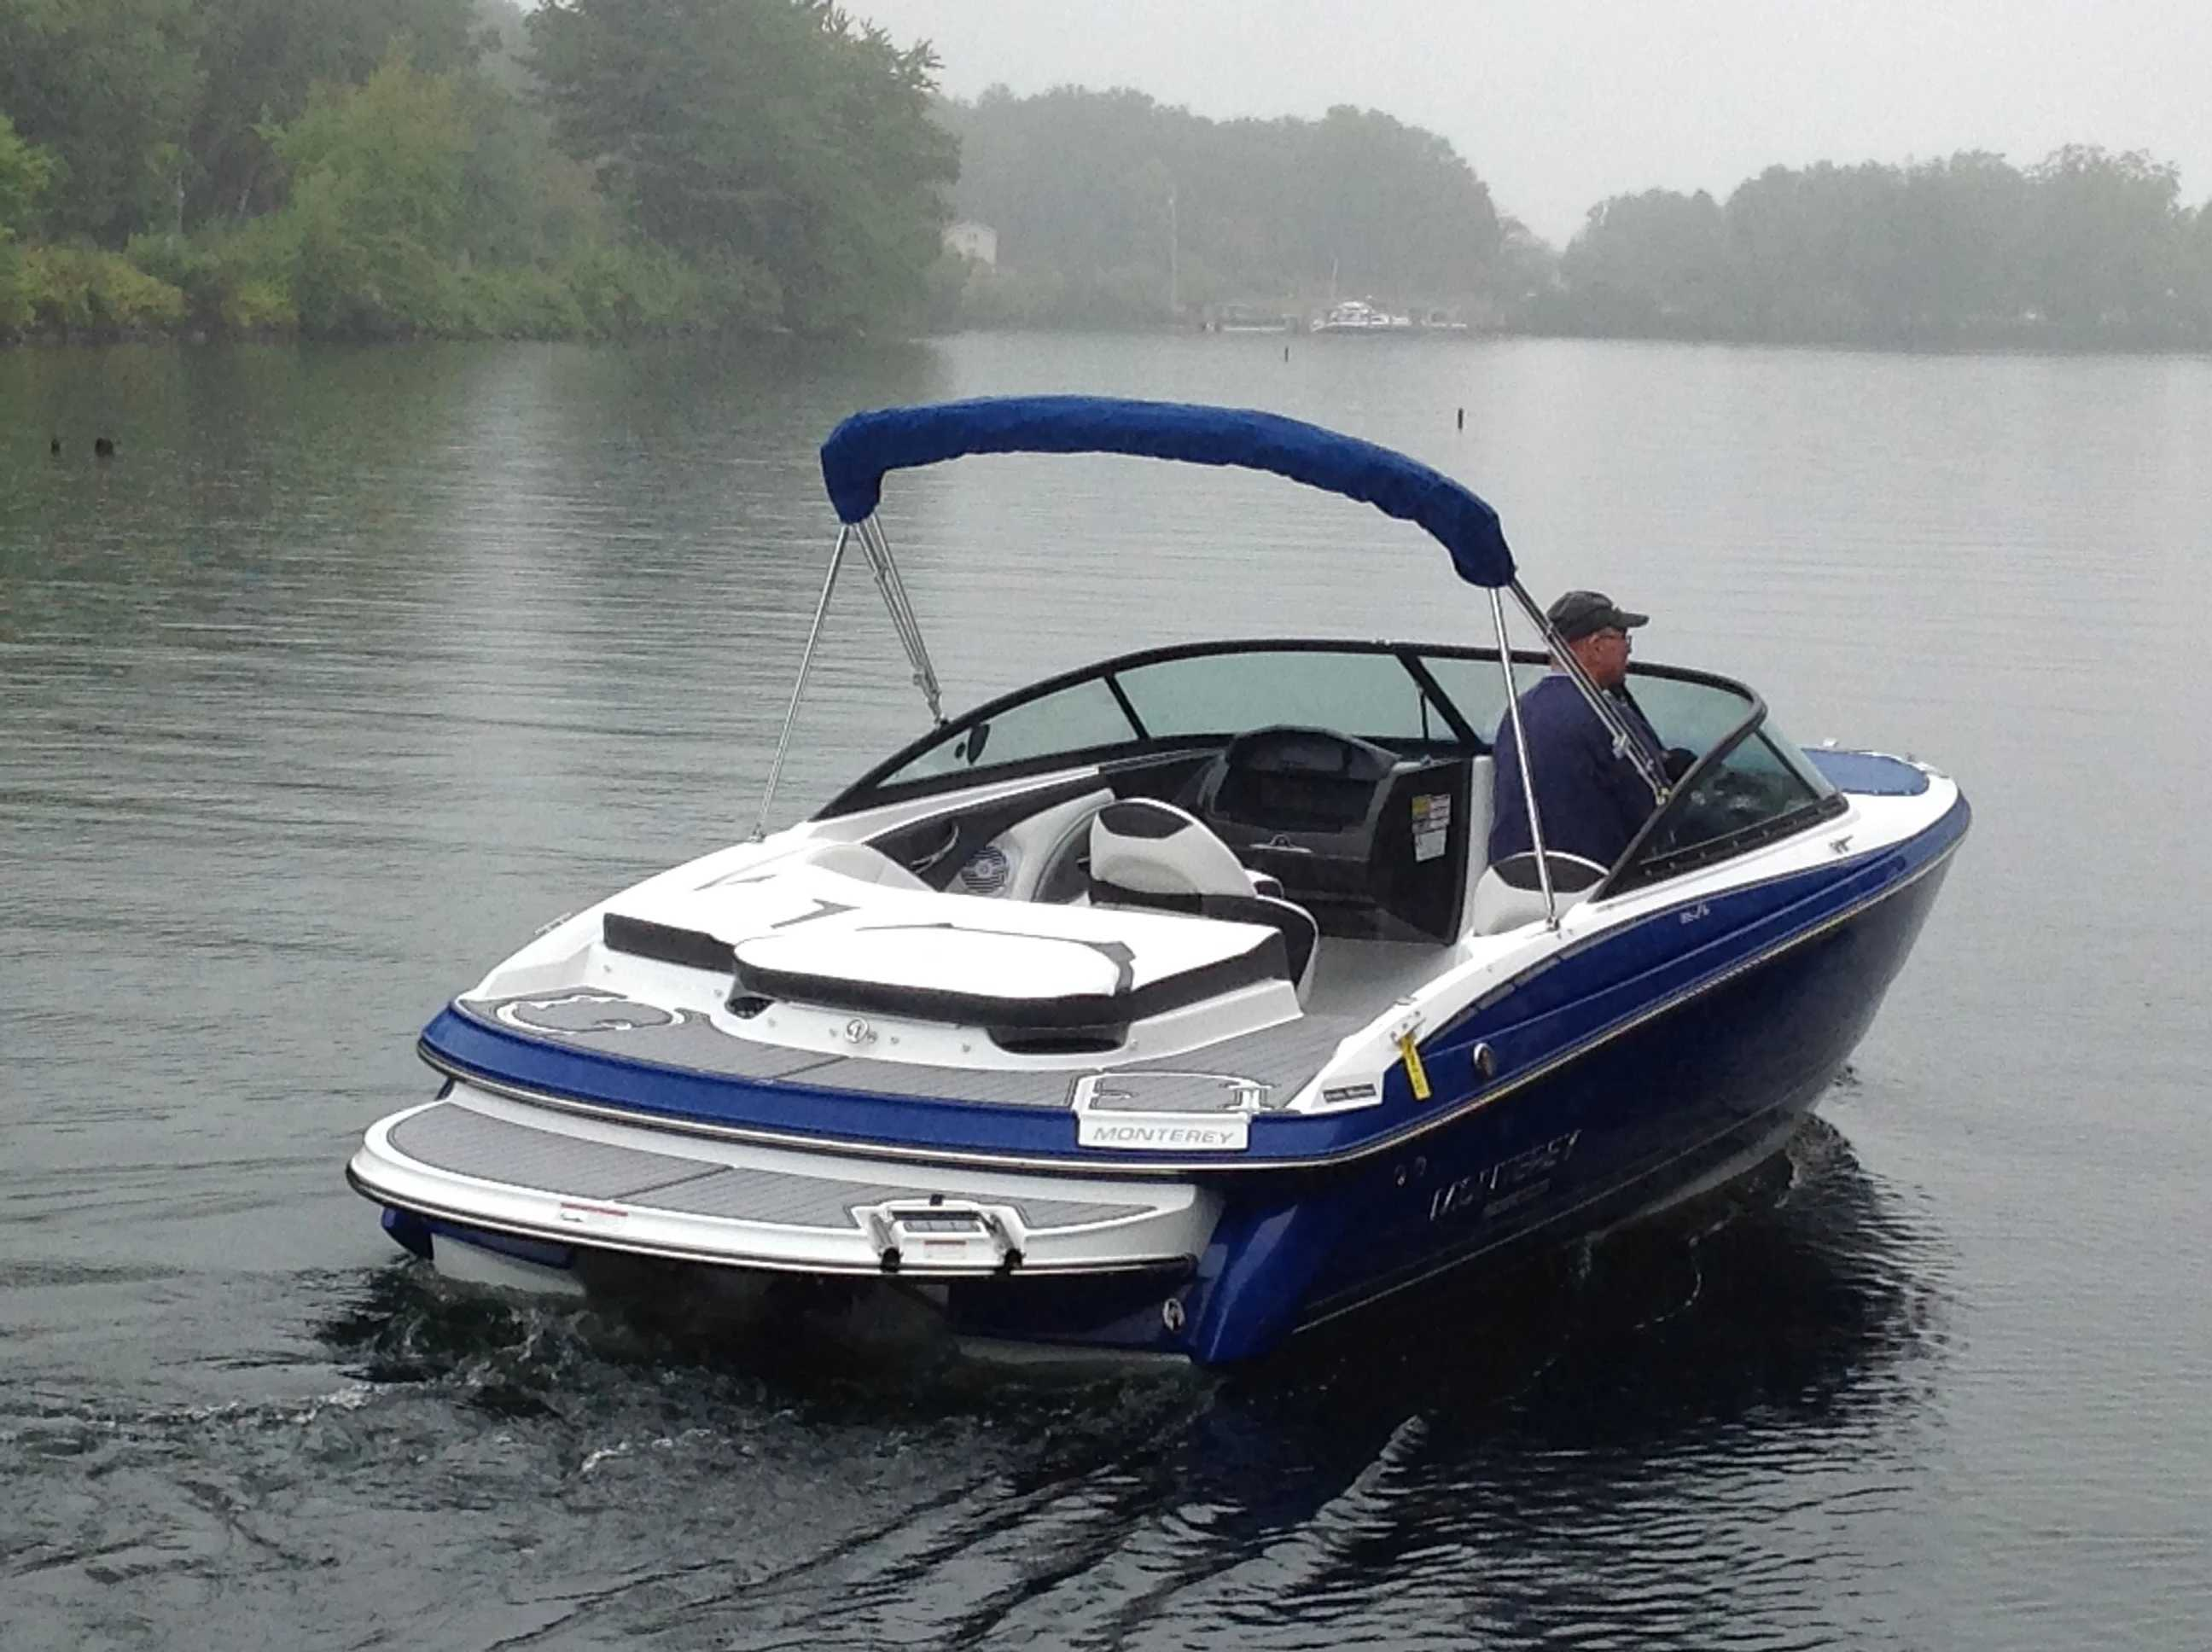 2021 Monterey boat for sale, model of the boat is 224FS & Image # 3 of 10